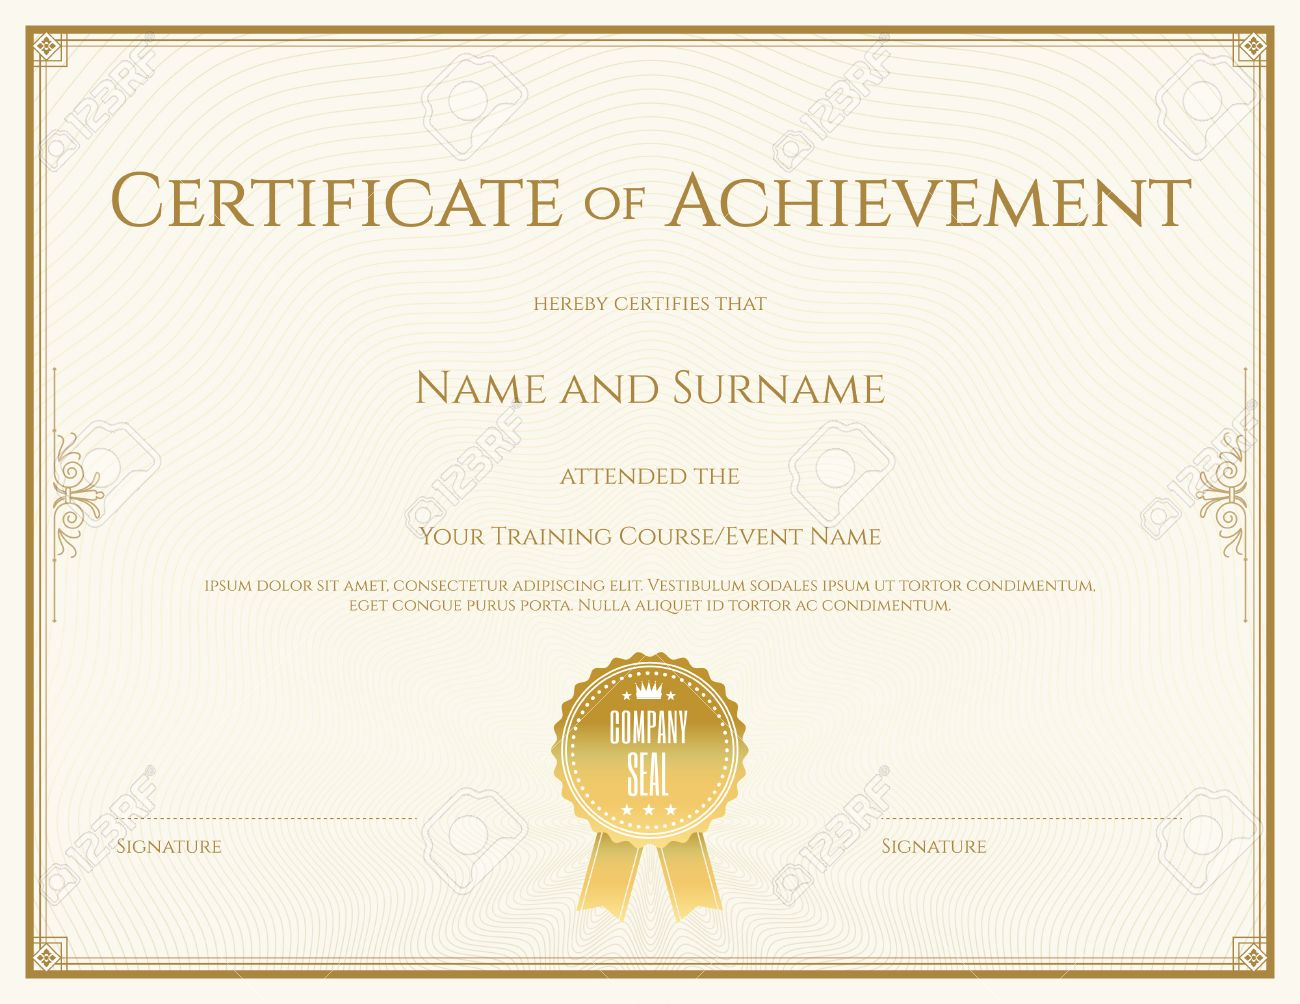 Certificate template in vector for achievement graduation completion - 50268811